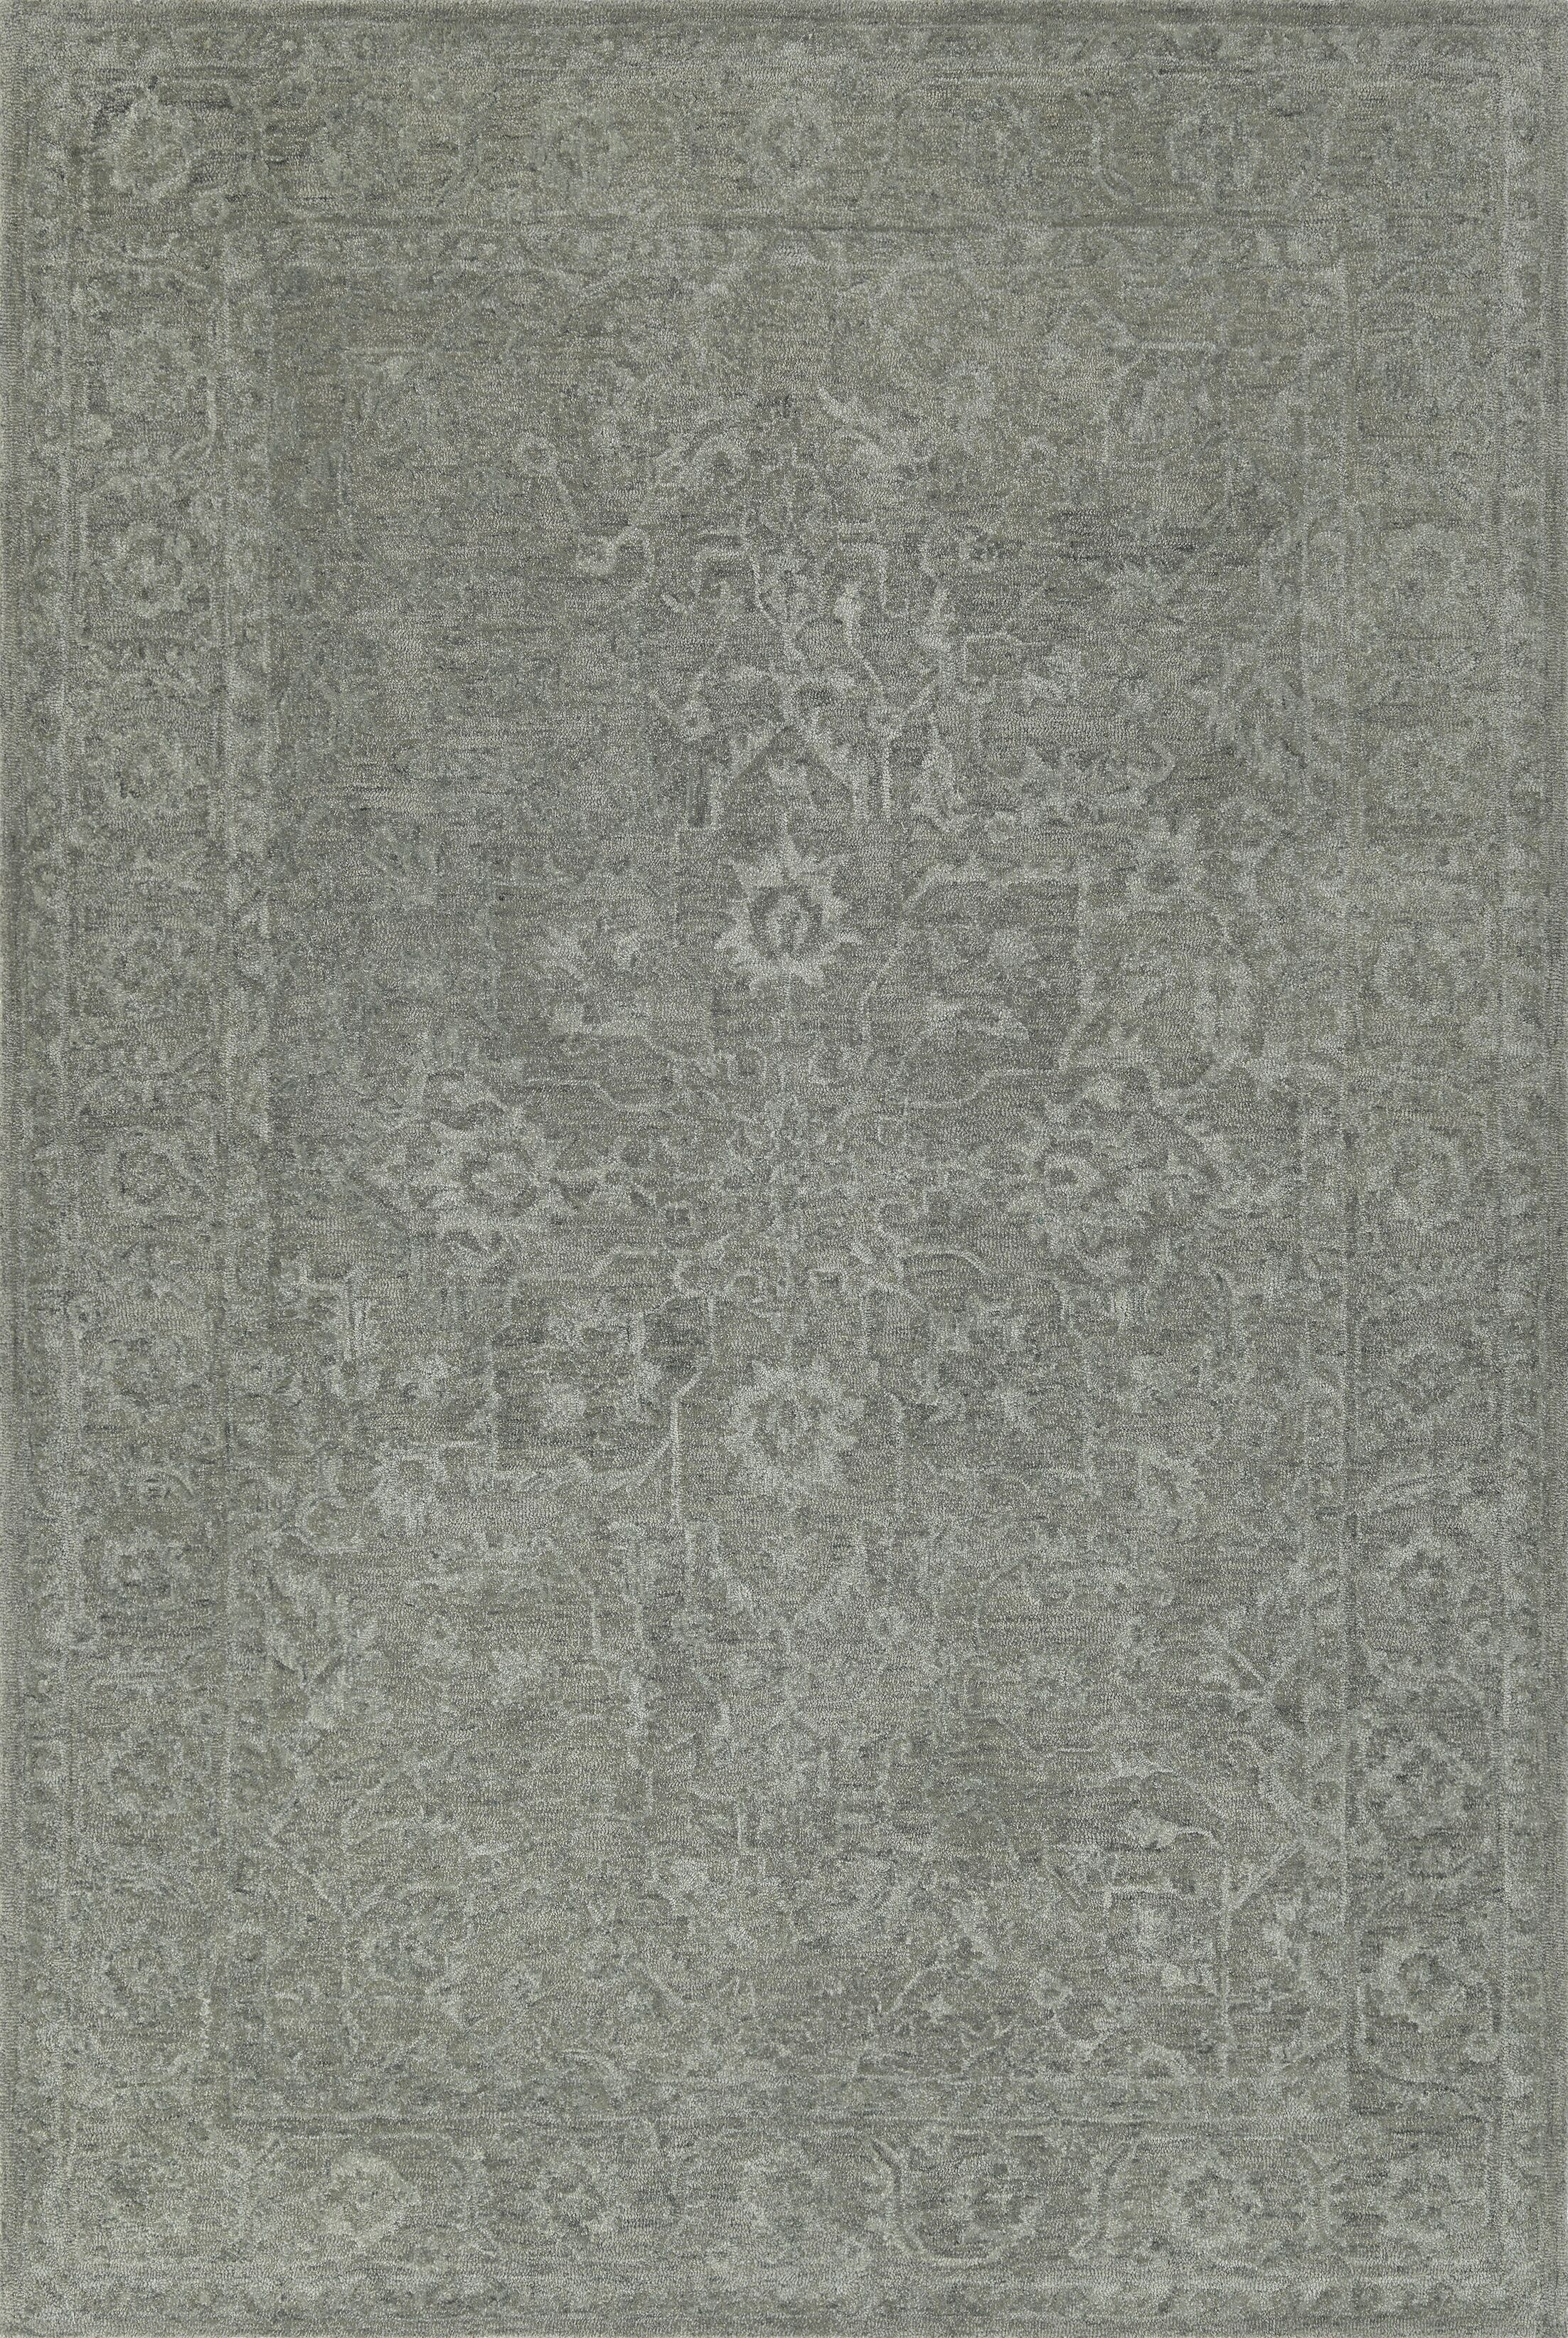 Chatmon Hand-Tufted Wool Silver Area Rug Rug Size: Rectangle 8' x 10'